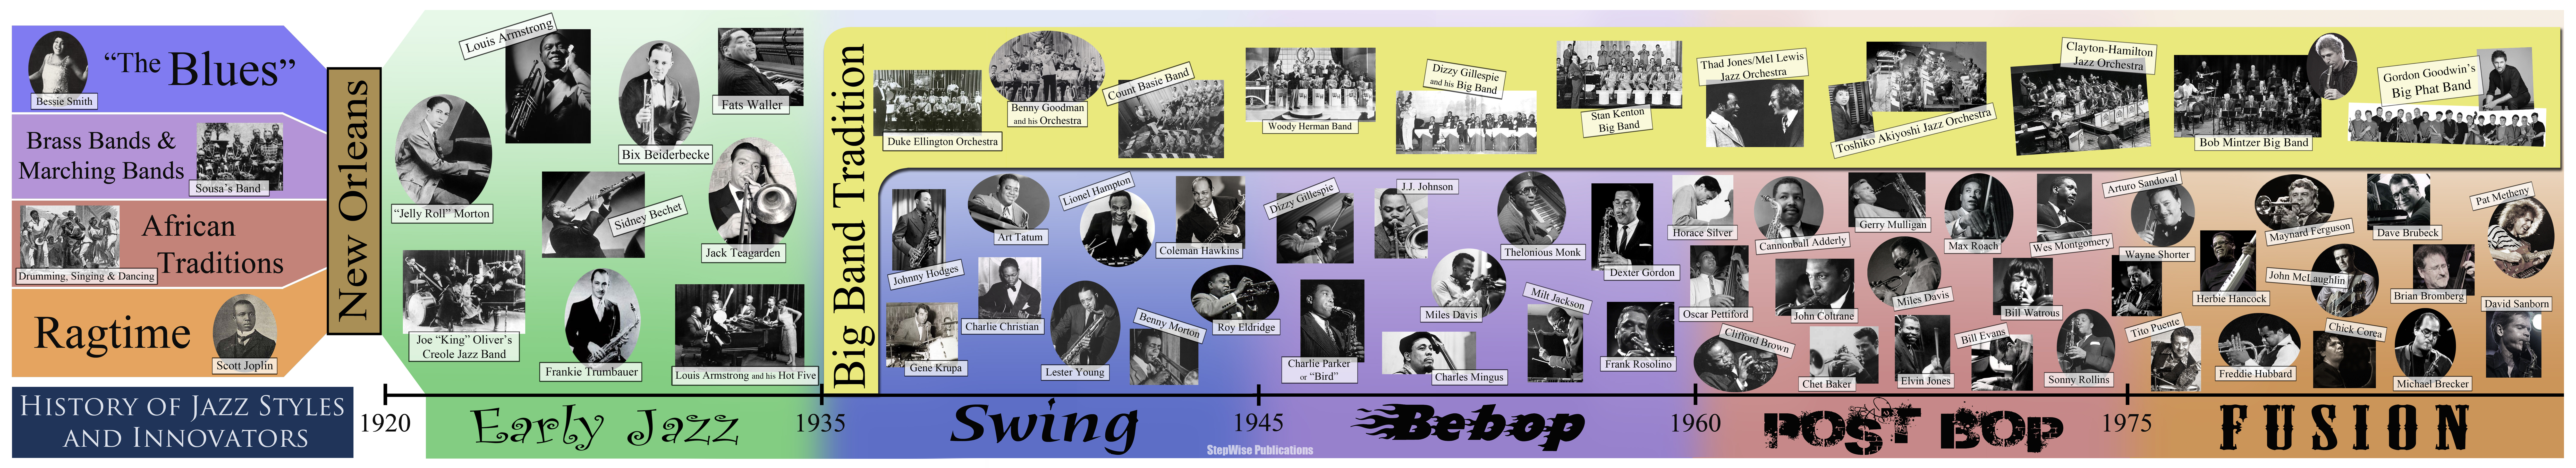 Free Posters For Your Band Or Orchestra Room - Stepwise Publications - Free Printable Music Posters